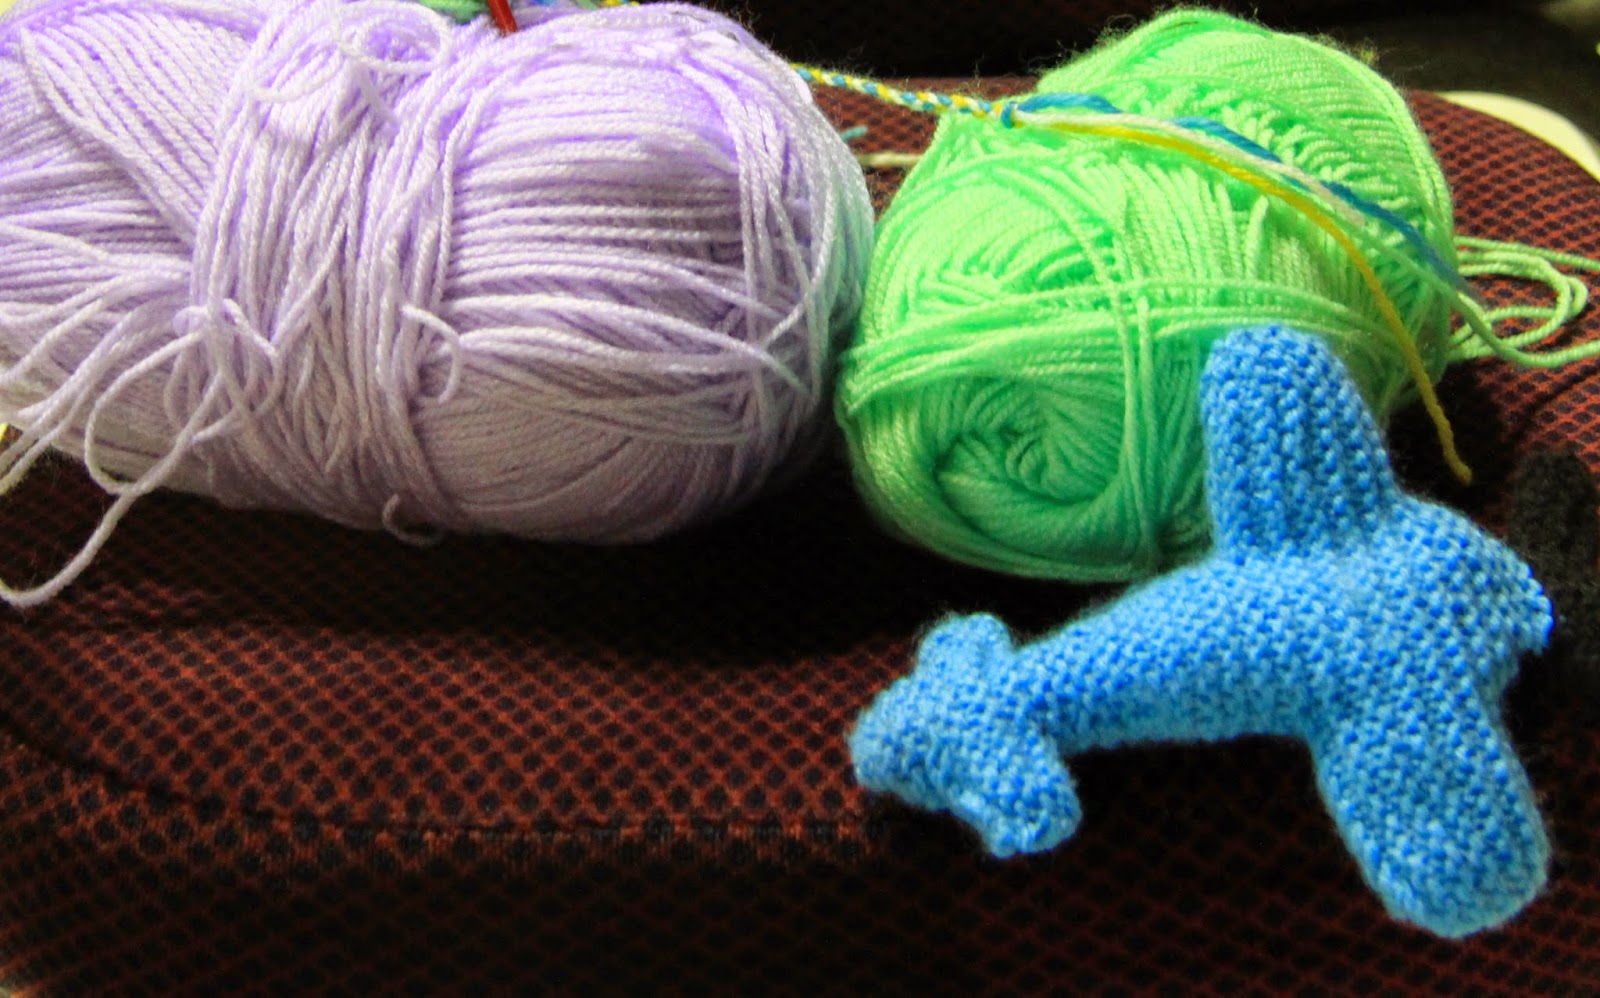 Jane's Probably Knitting: How to knit an aeroplane